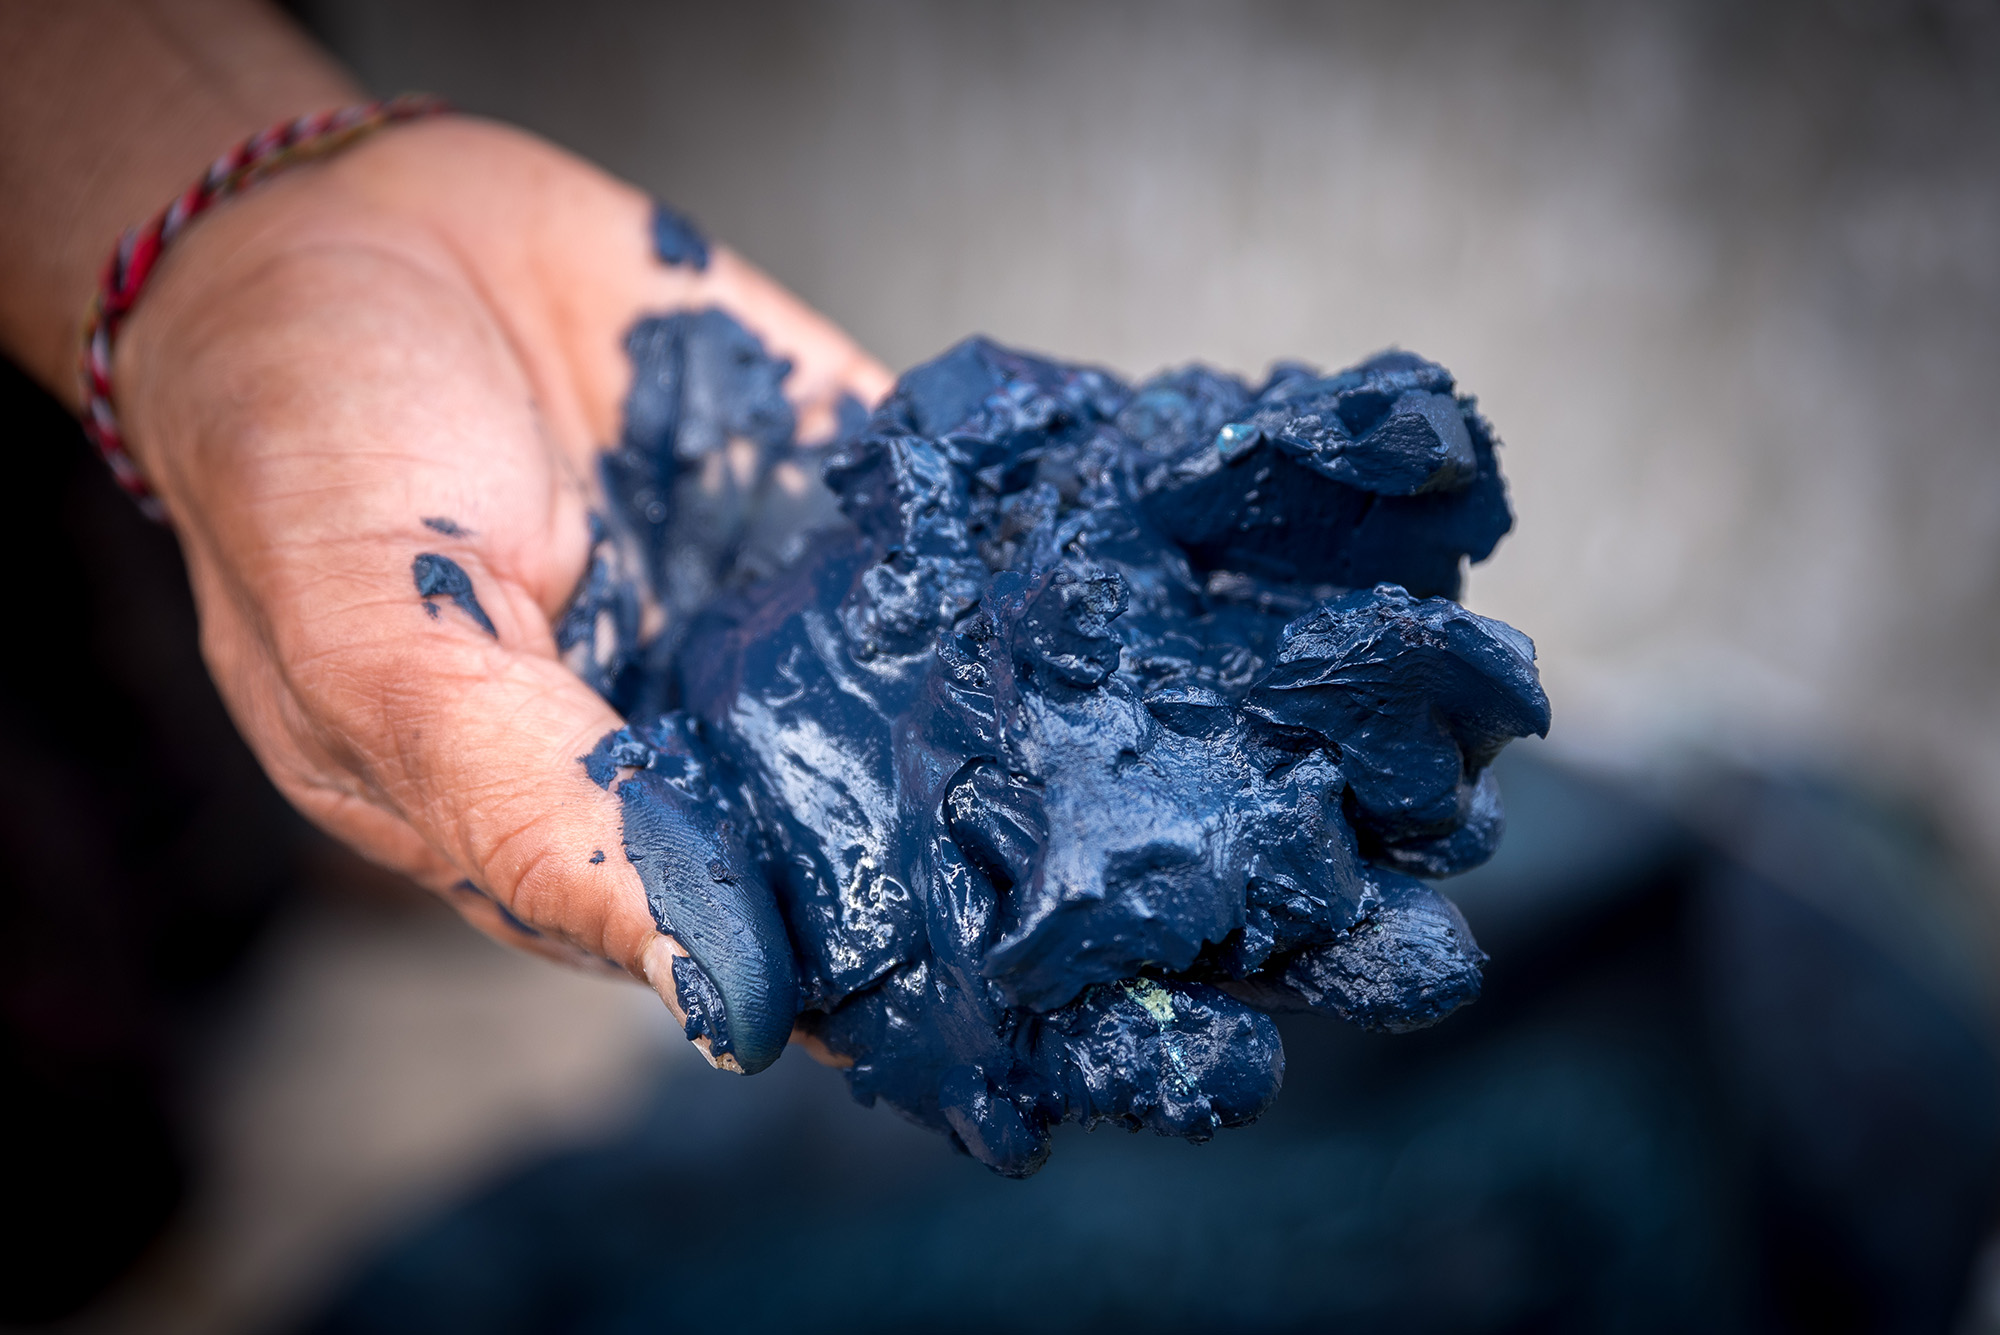 A hand with a string bracelet holds out indigo dye paste, which looks like wet, blue clay.